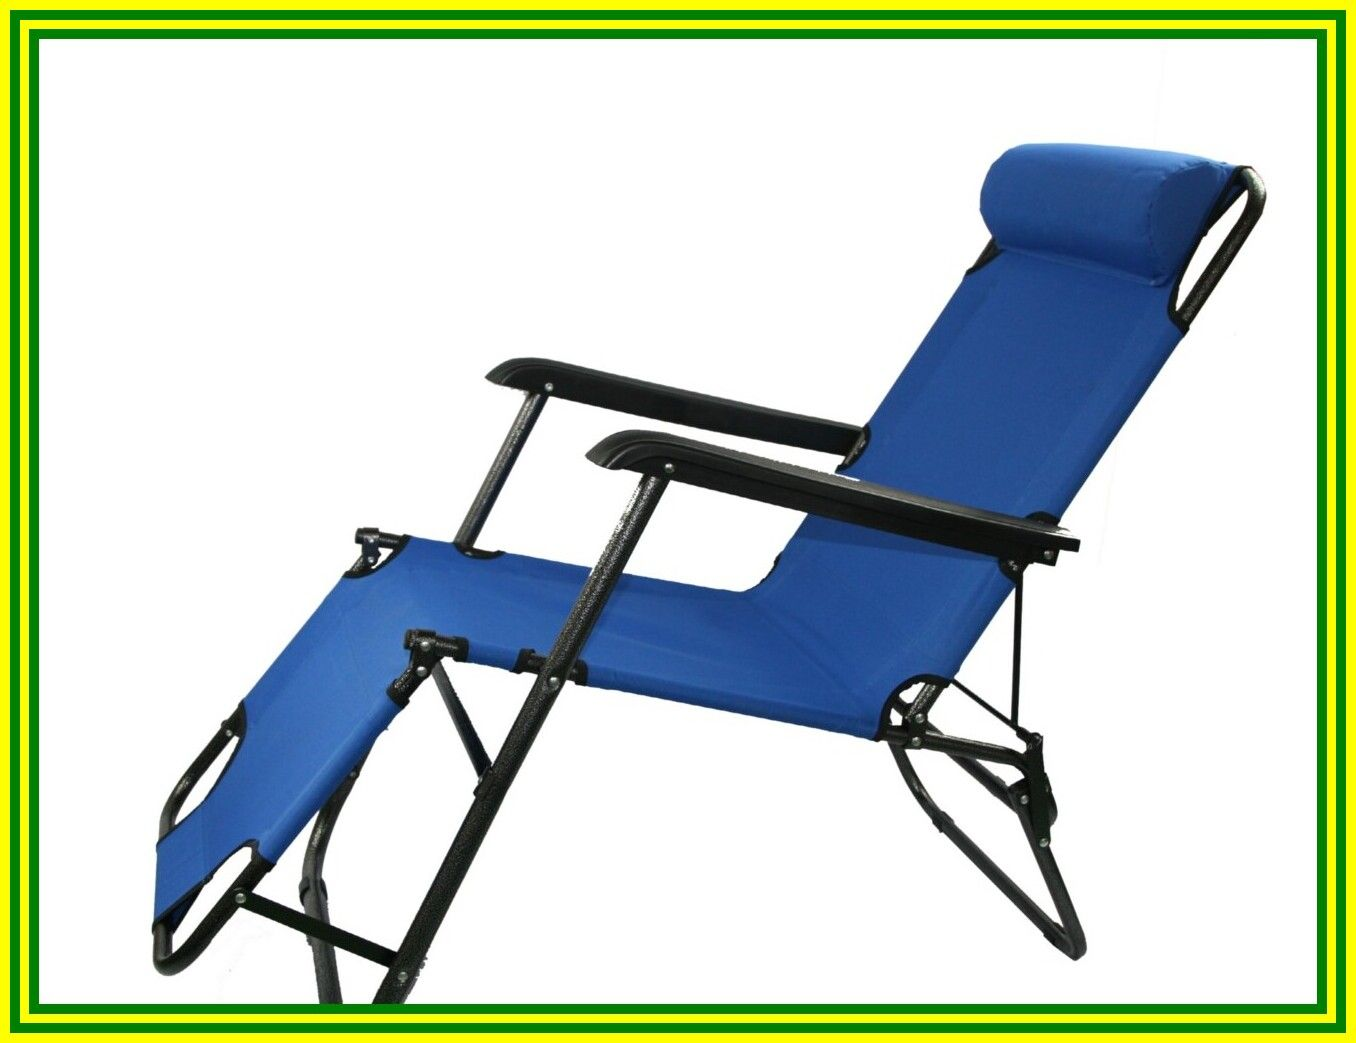 80 Reference Of Folding Beach Chair Target In 2020 Folding Beach Chair Beach Chairs Lounge Chair Outdoor